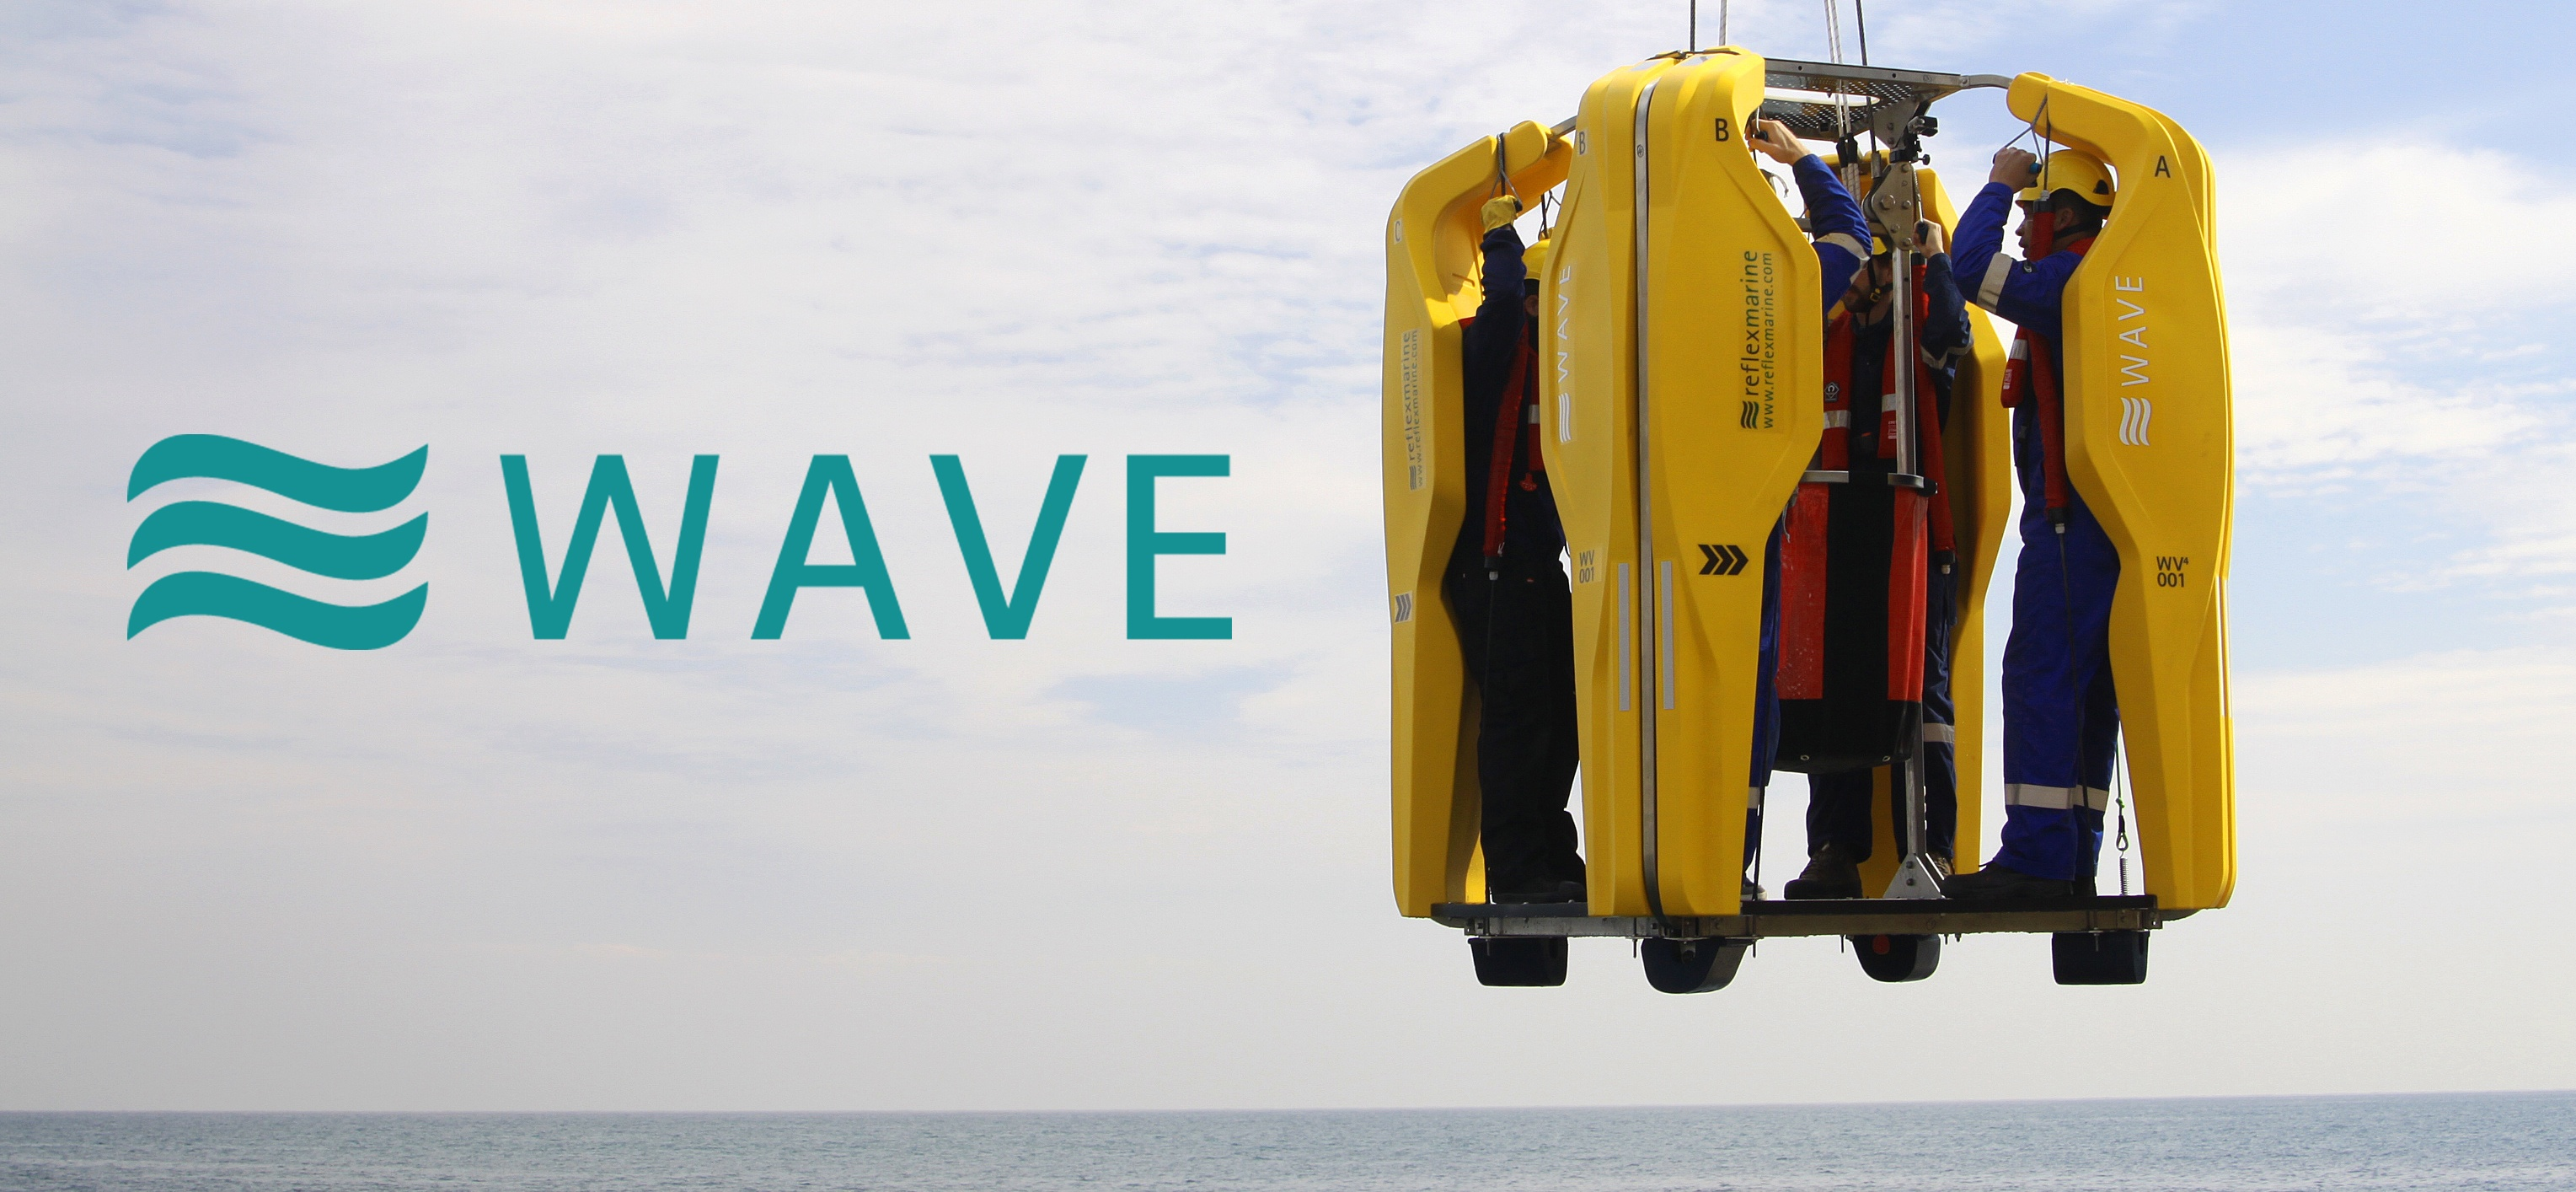 WAVE-4 In Action